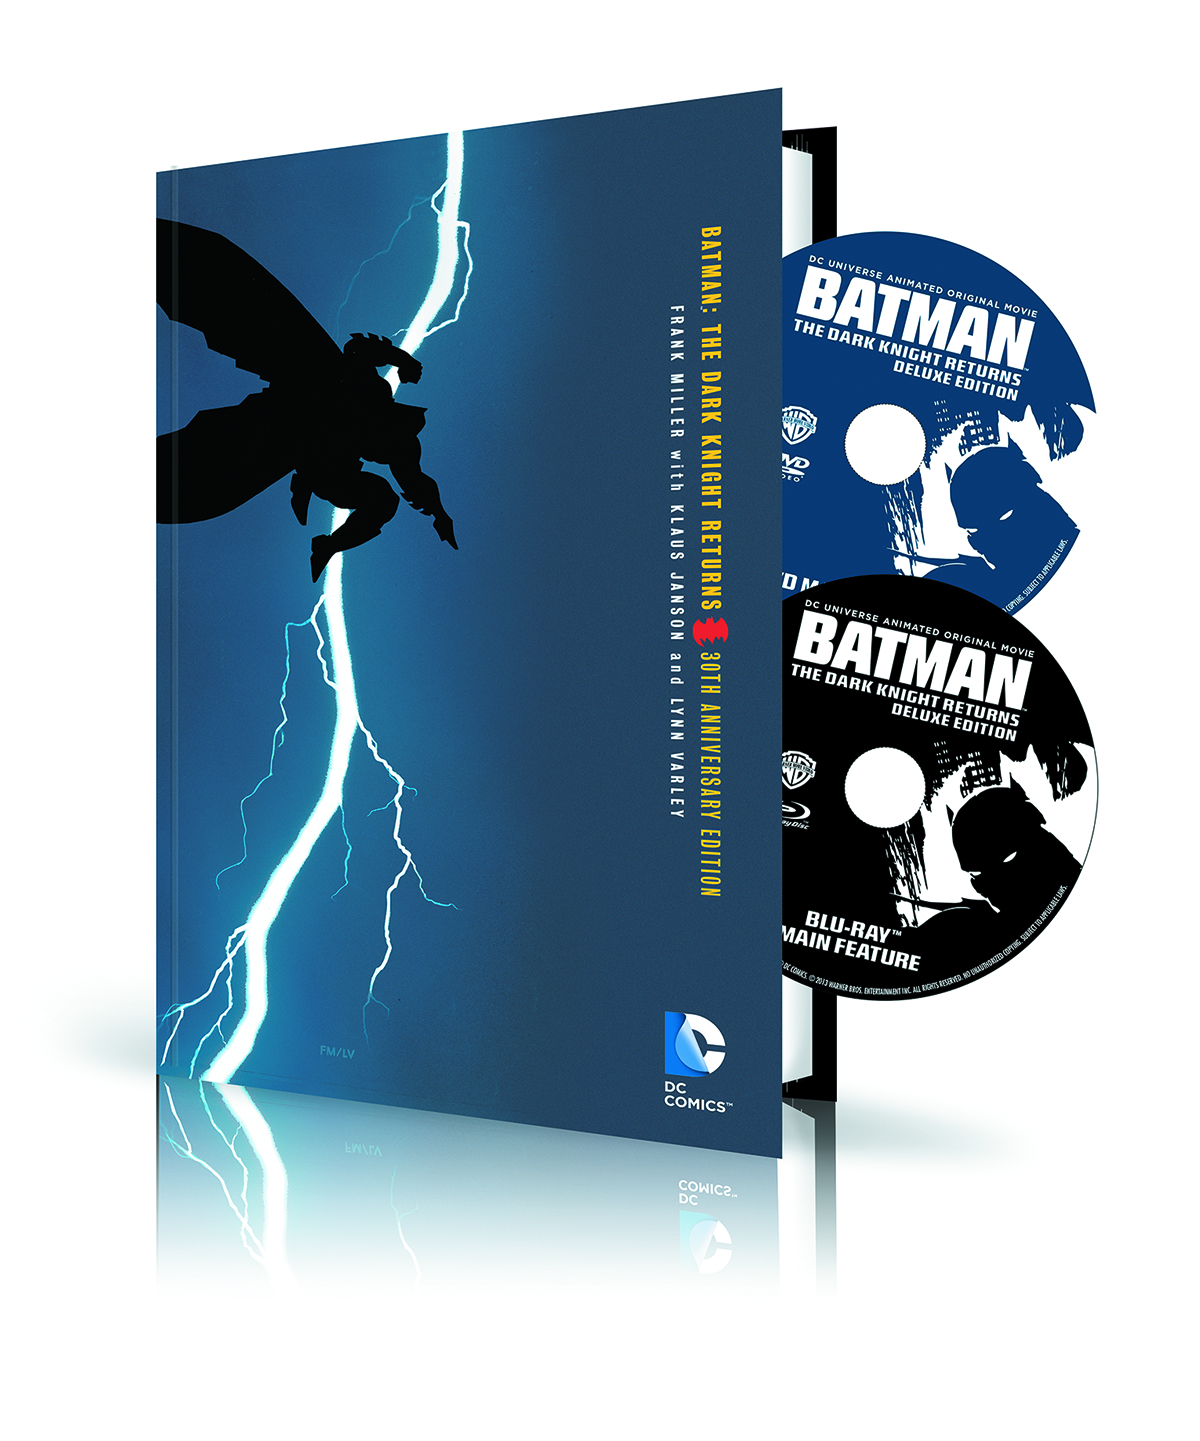 BATMAN DARK KNIGHT RETURNS HC BOOK & DVD BLU RAY SET